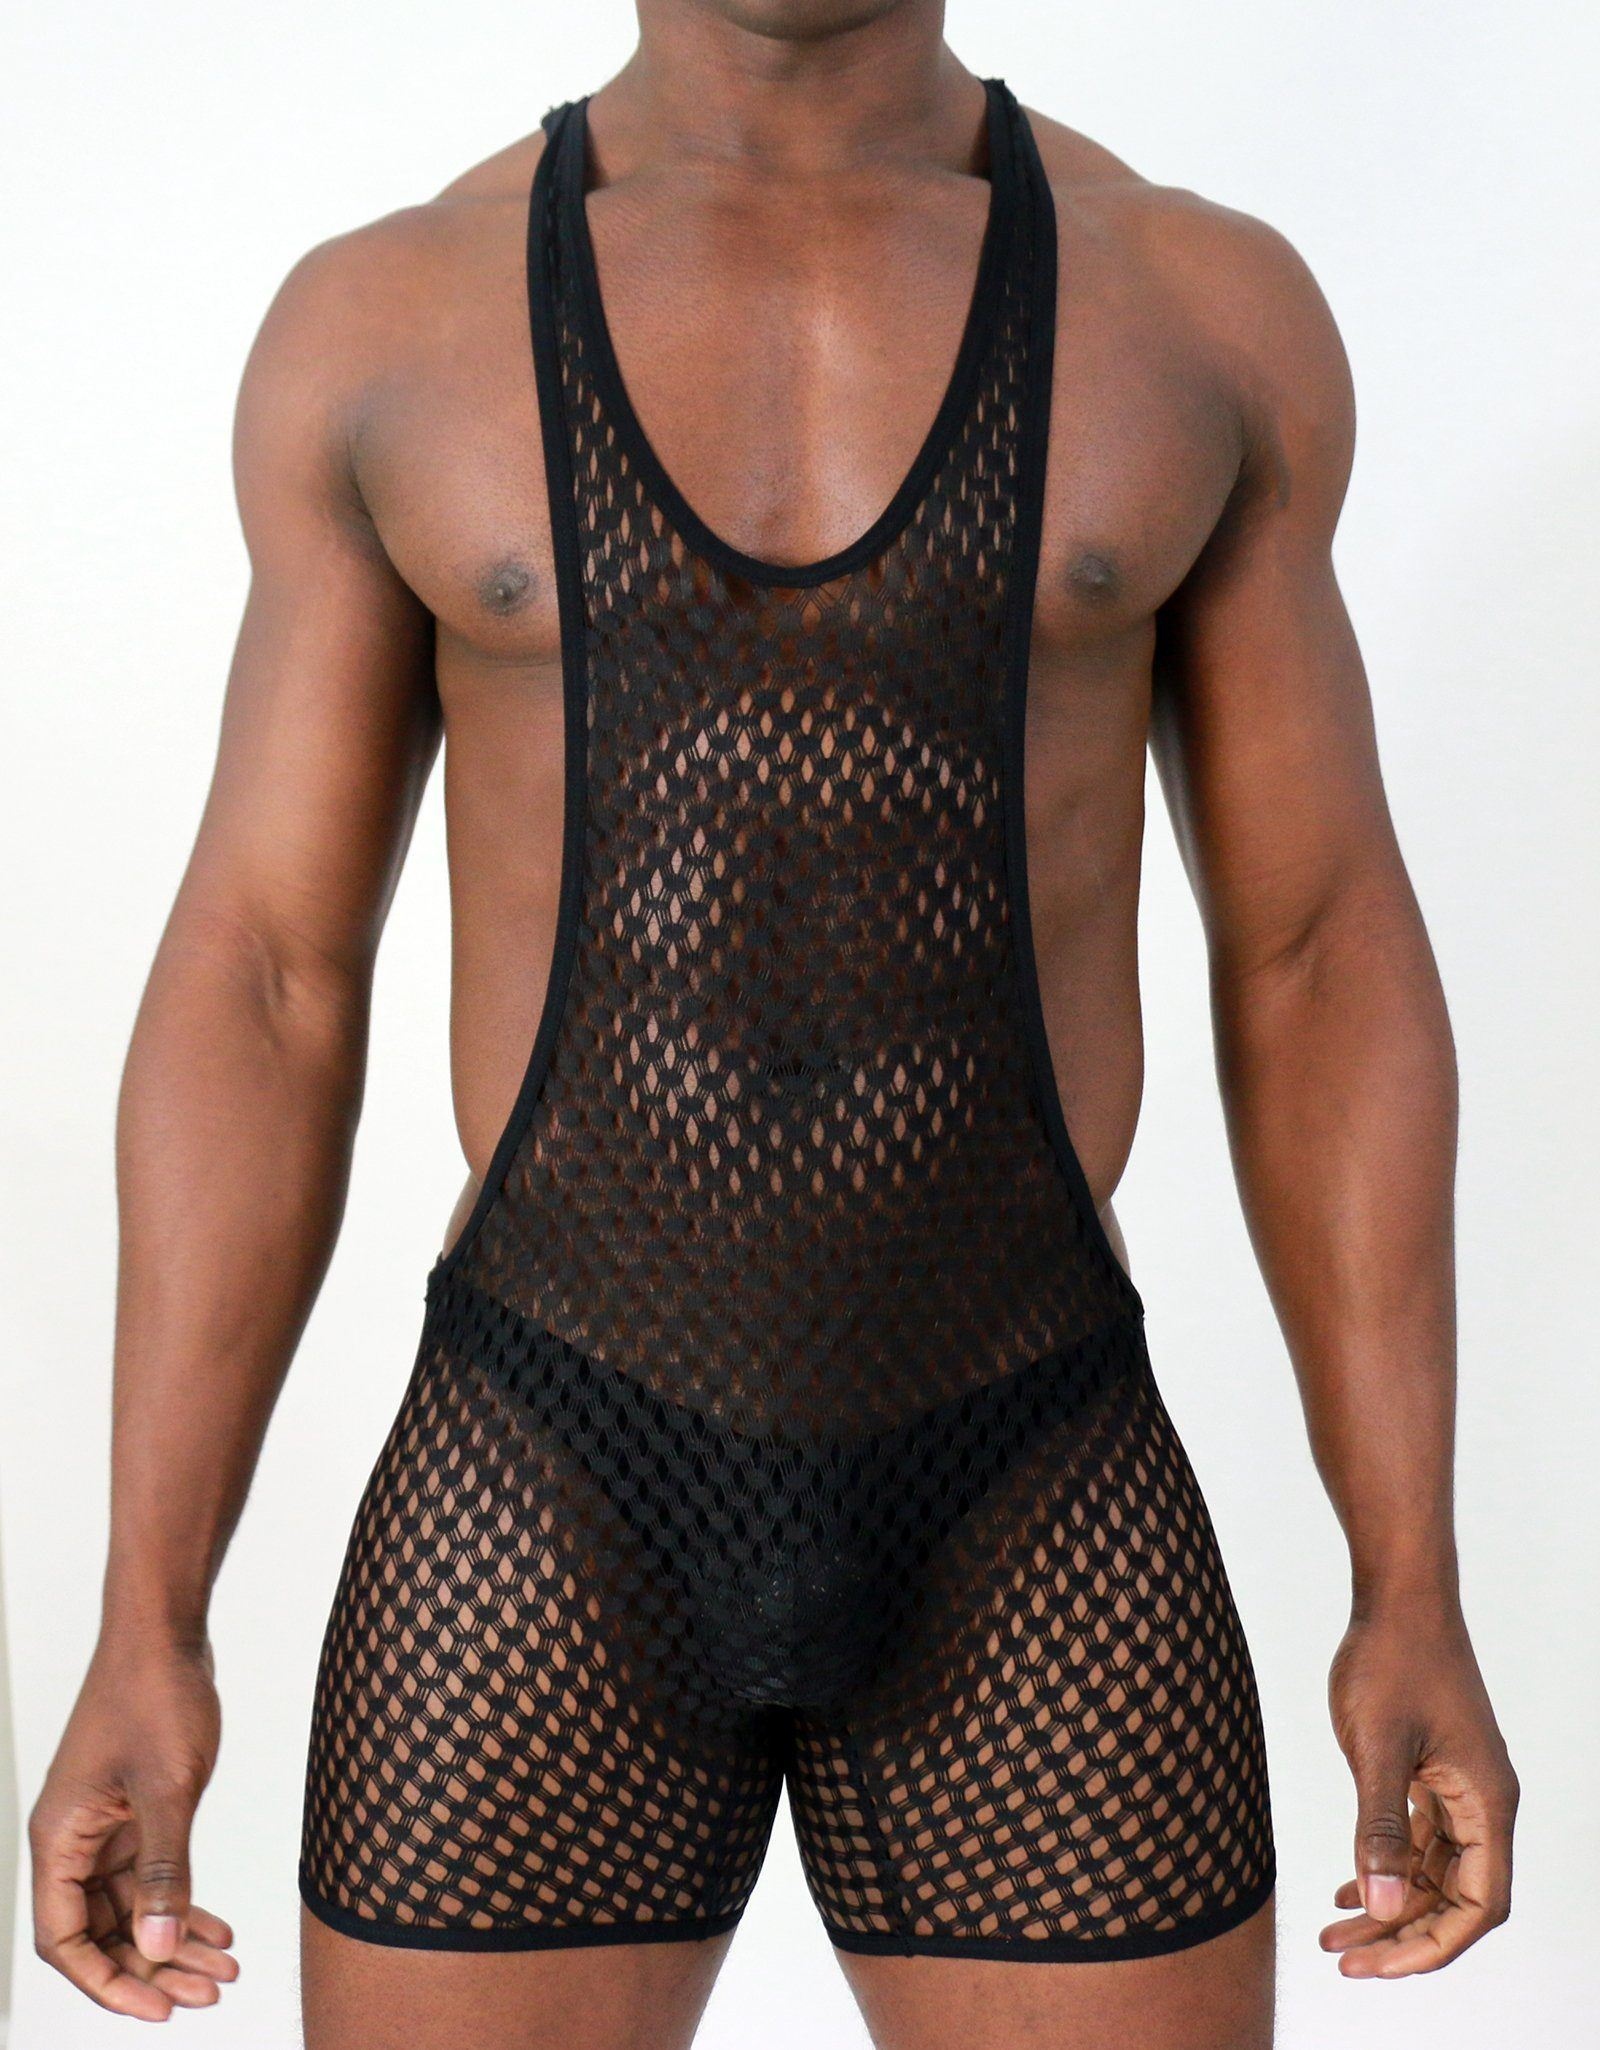 Midnight Mesh Body Suit  -  Body Suit - TasteeTreasures